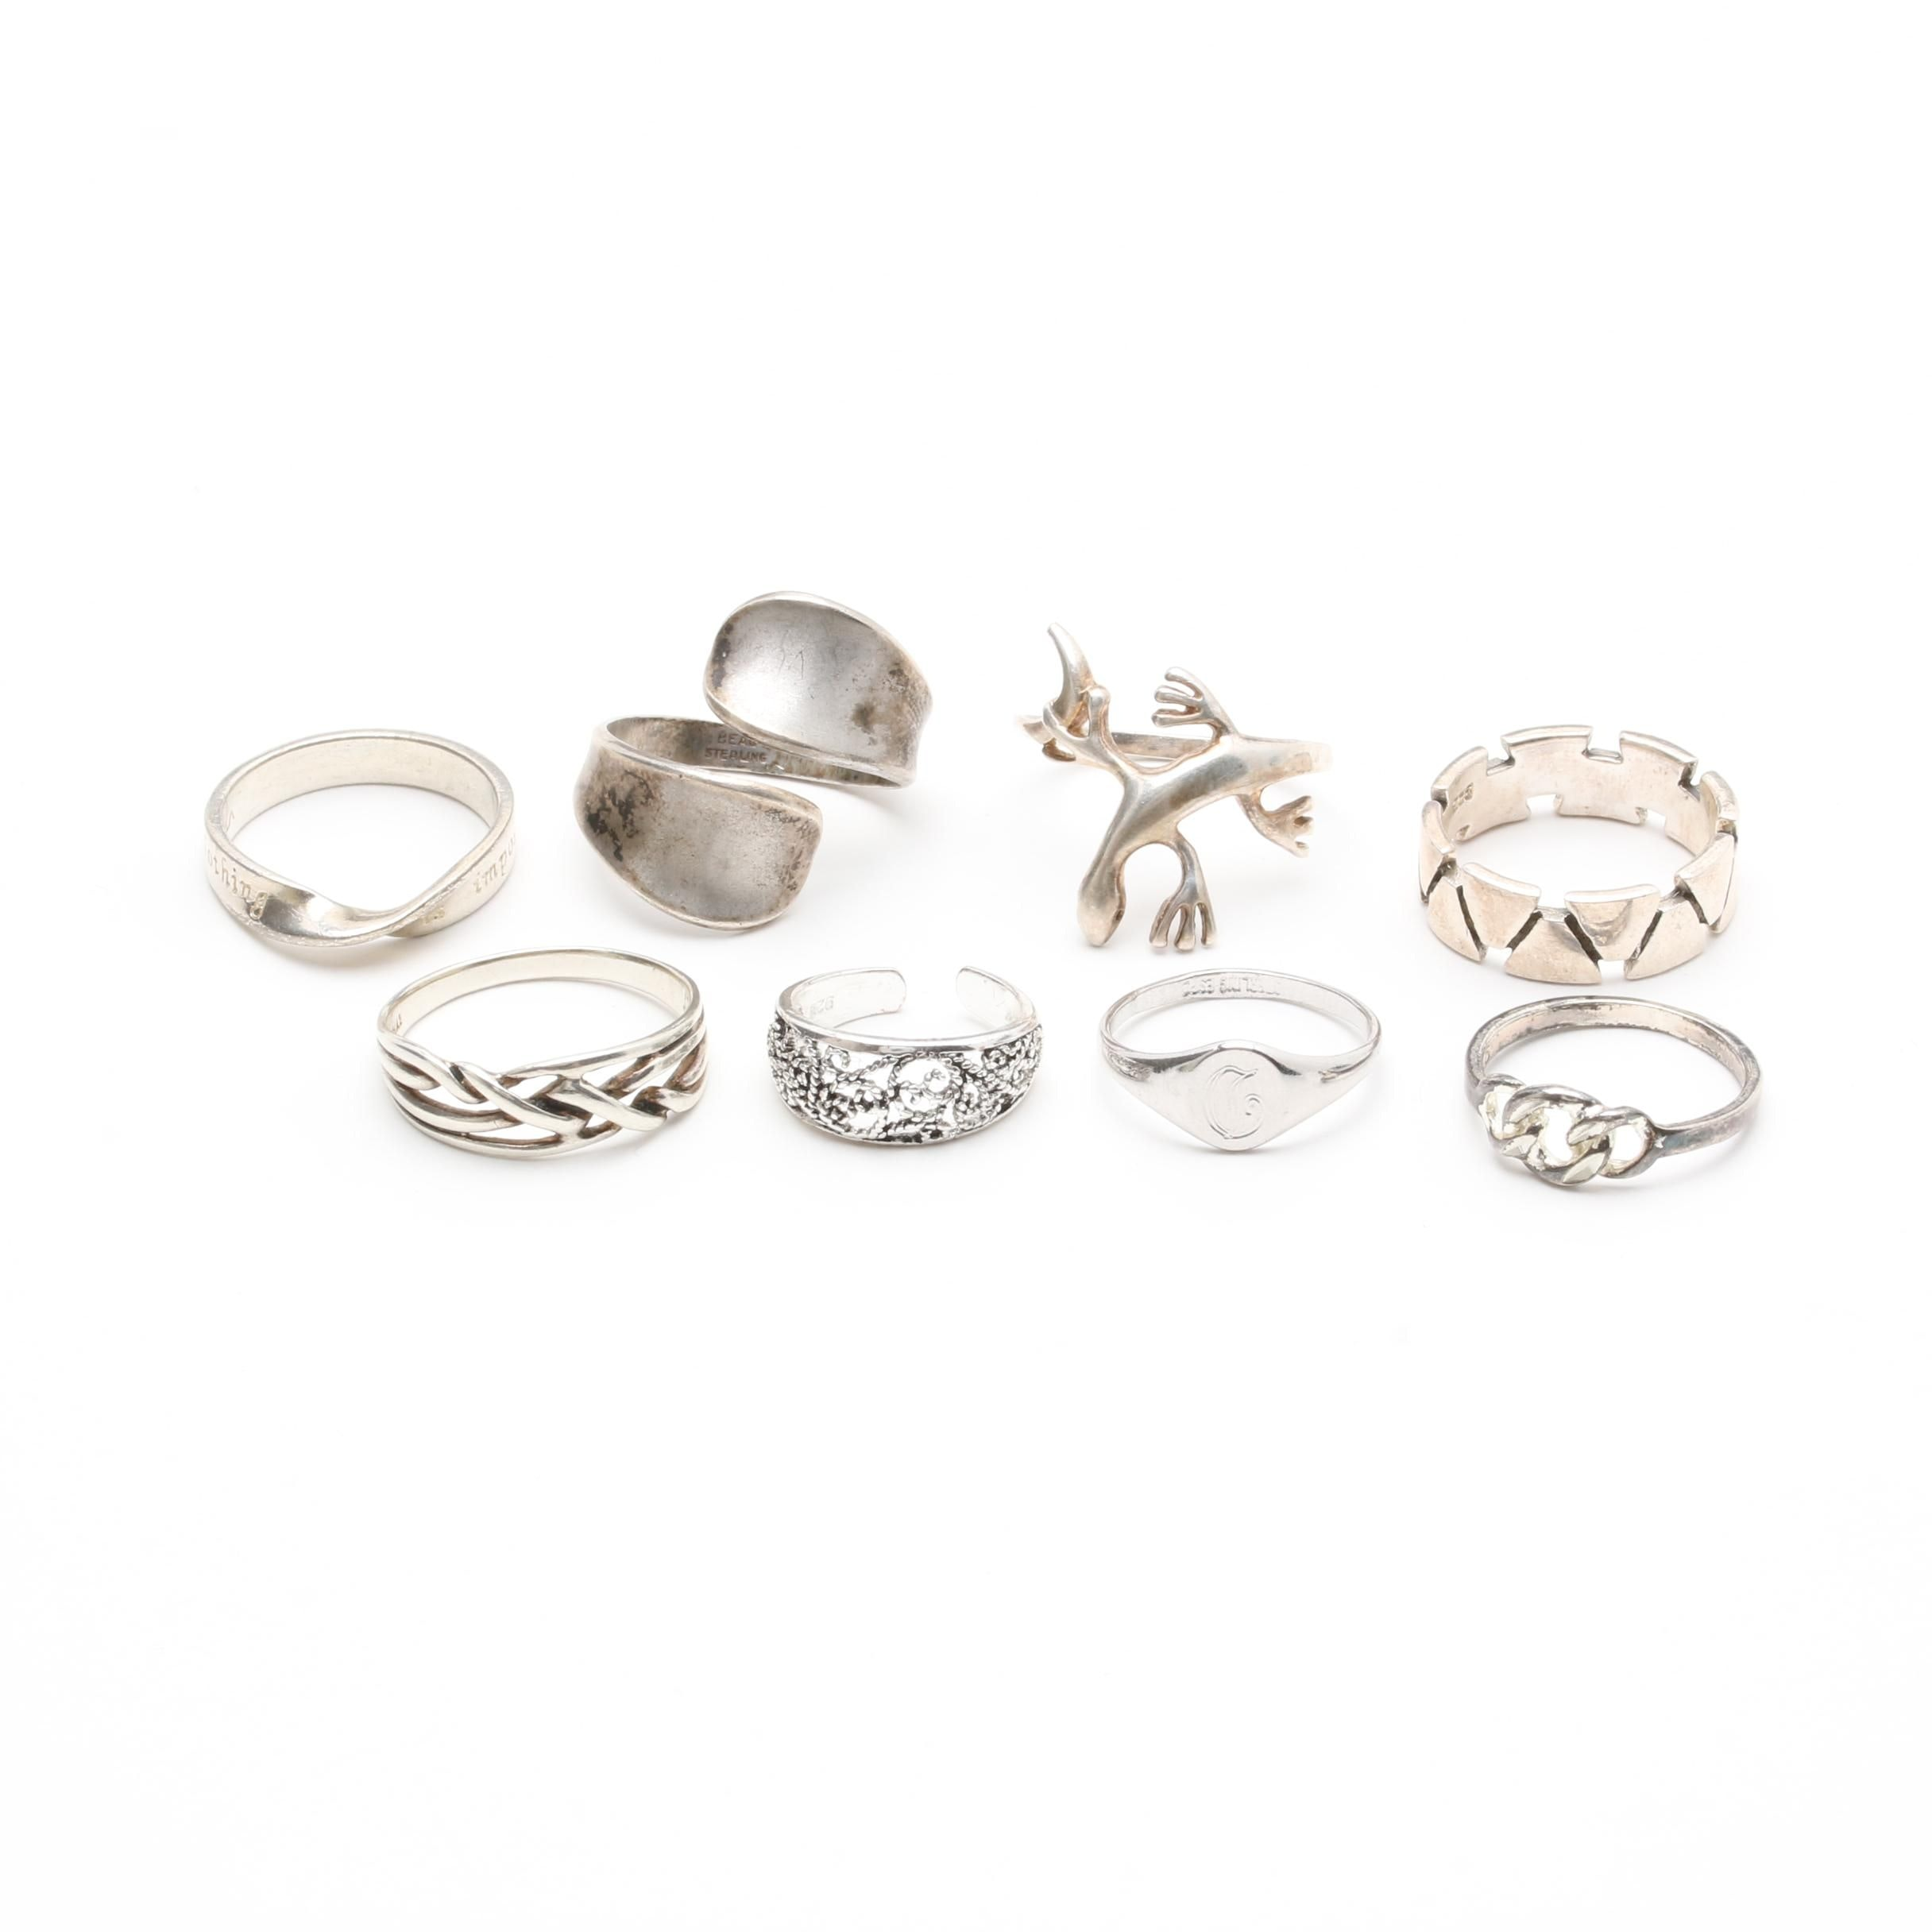 Sterling Silver Ring Selection Including Toe Rings